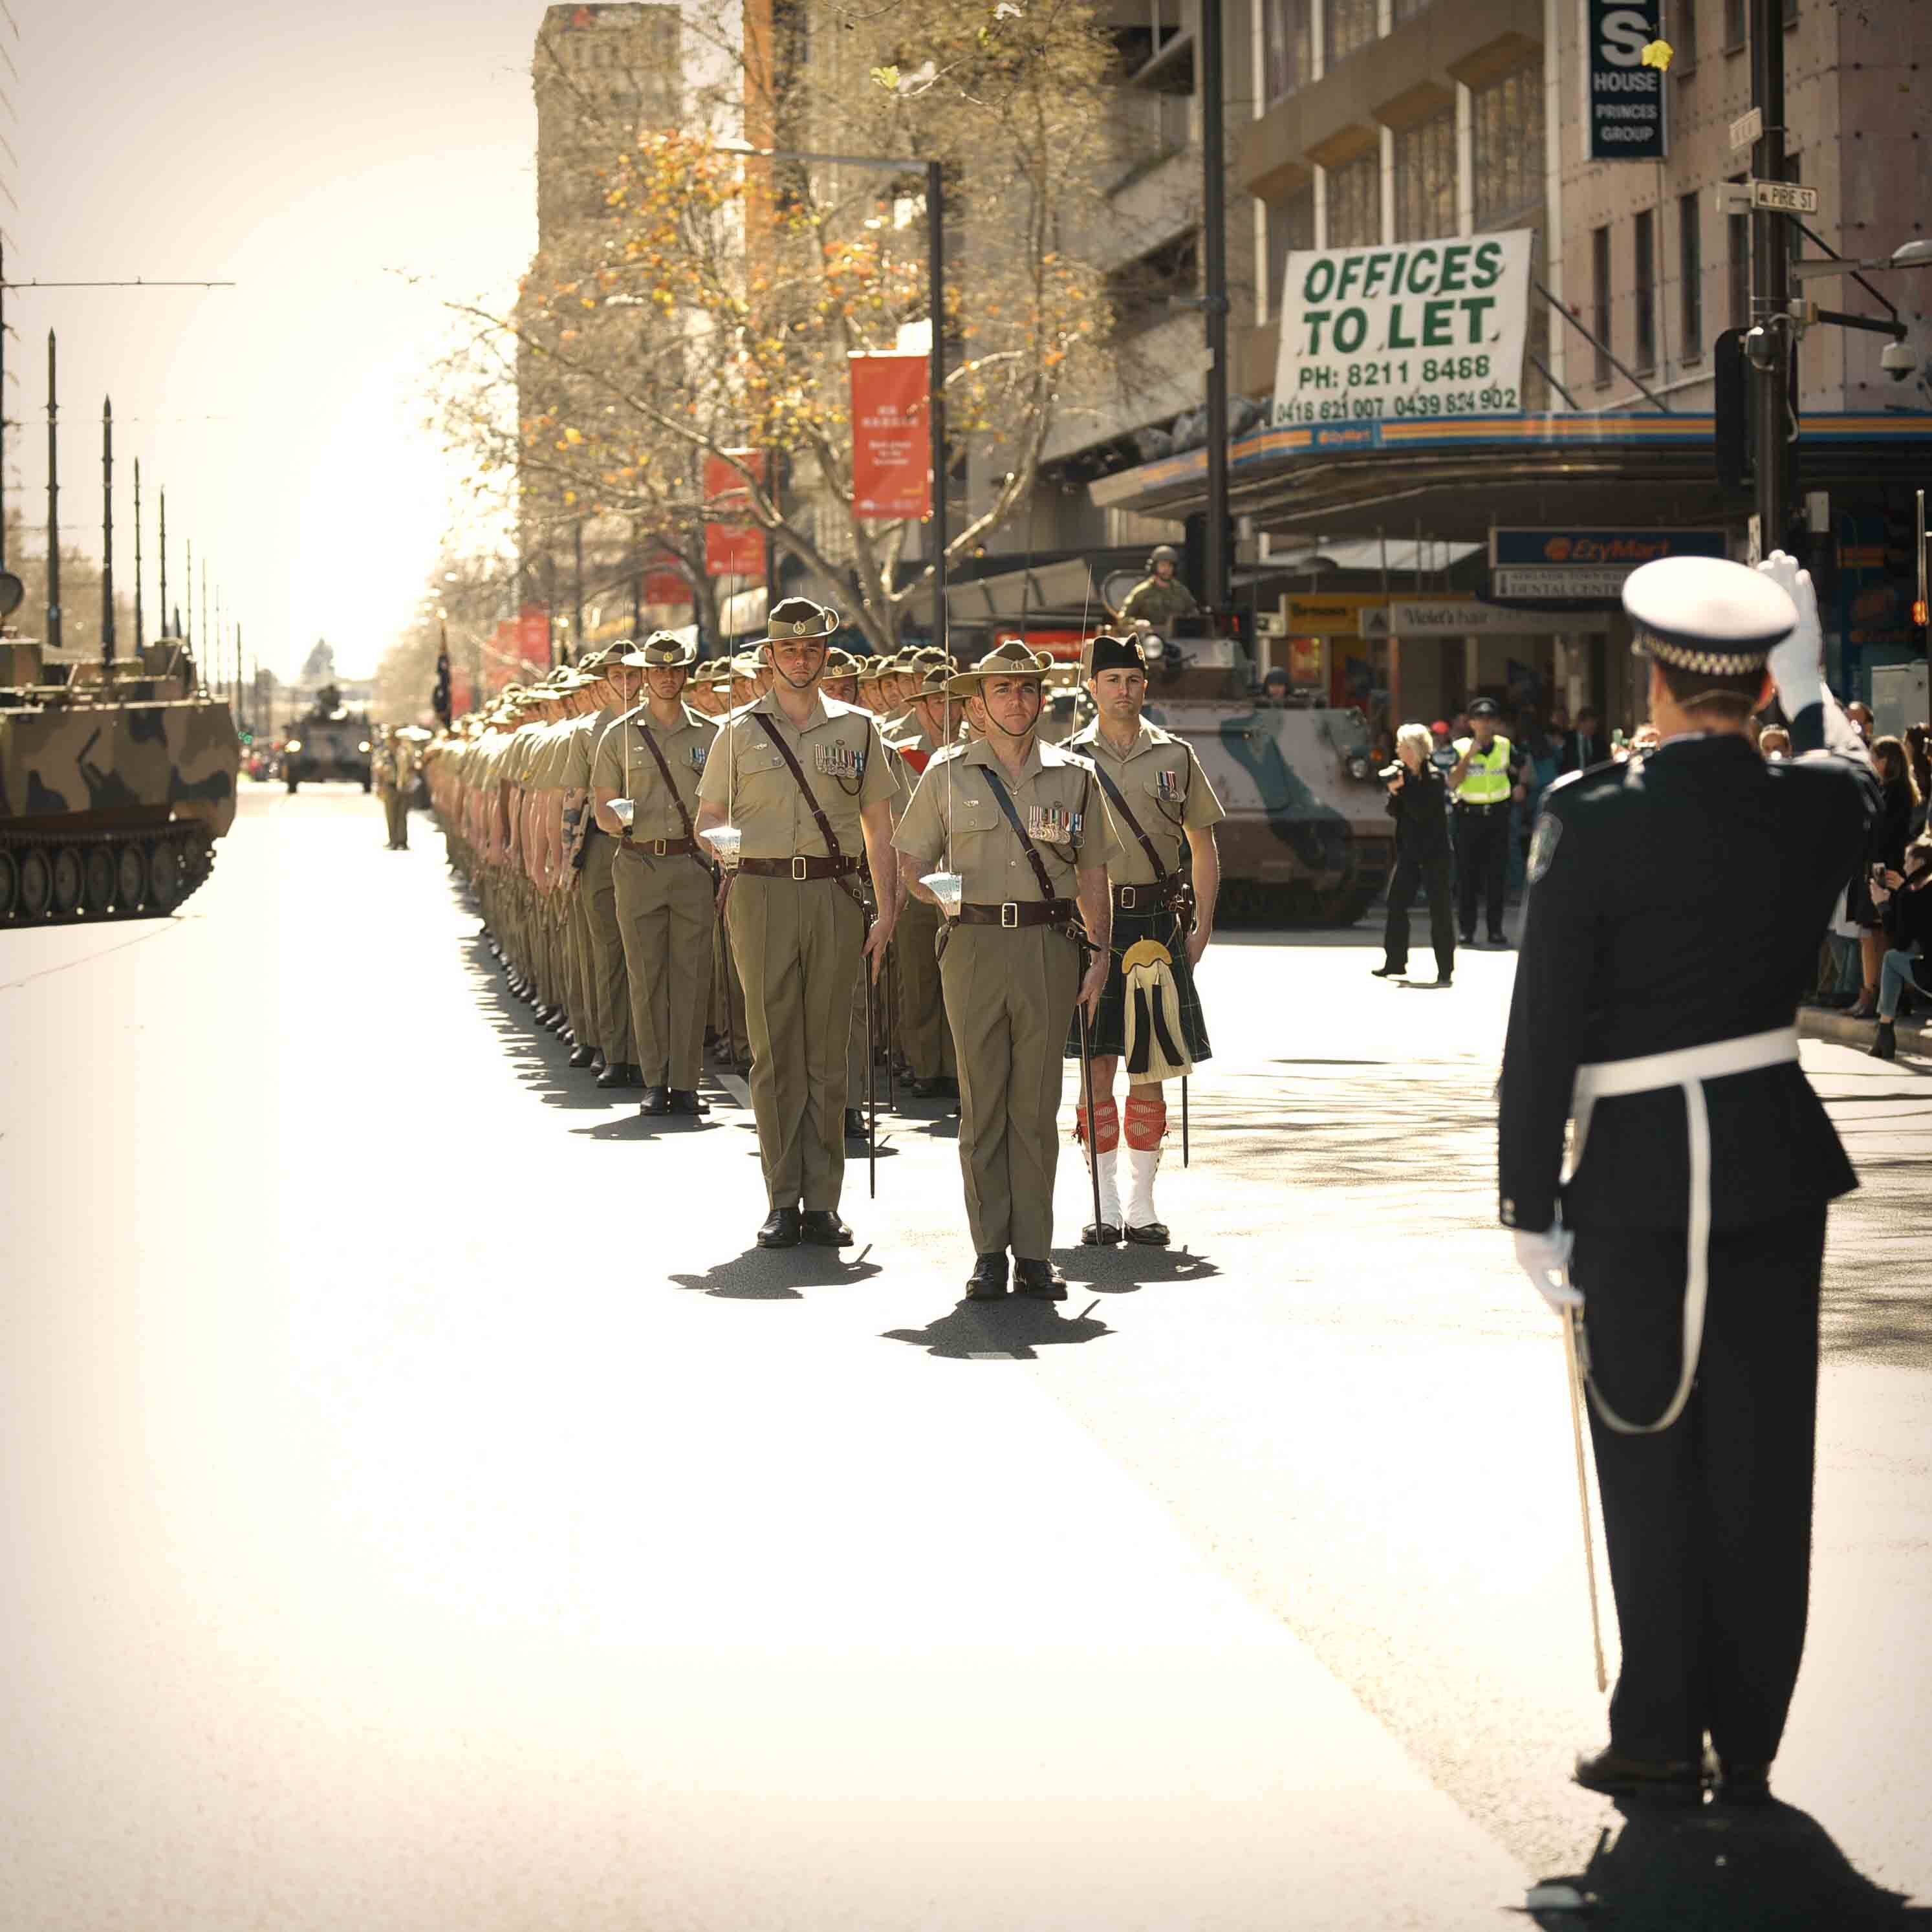 7th RAR Royal Australian Regiment Freedom of the City King William Street Adelaide